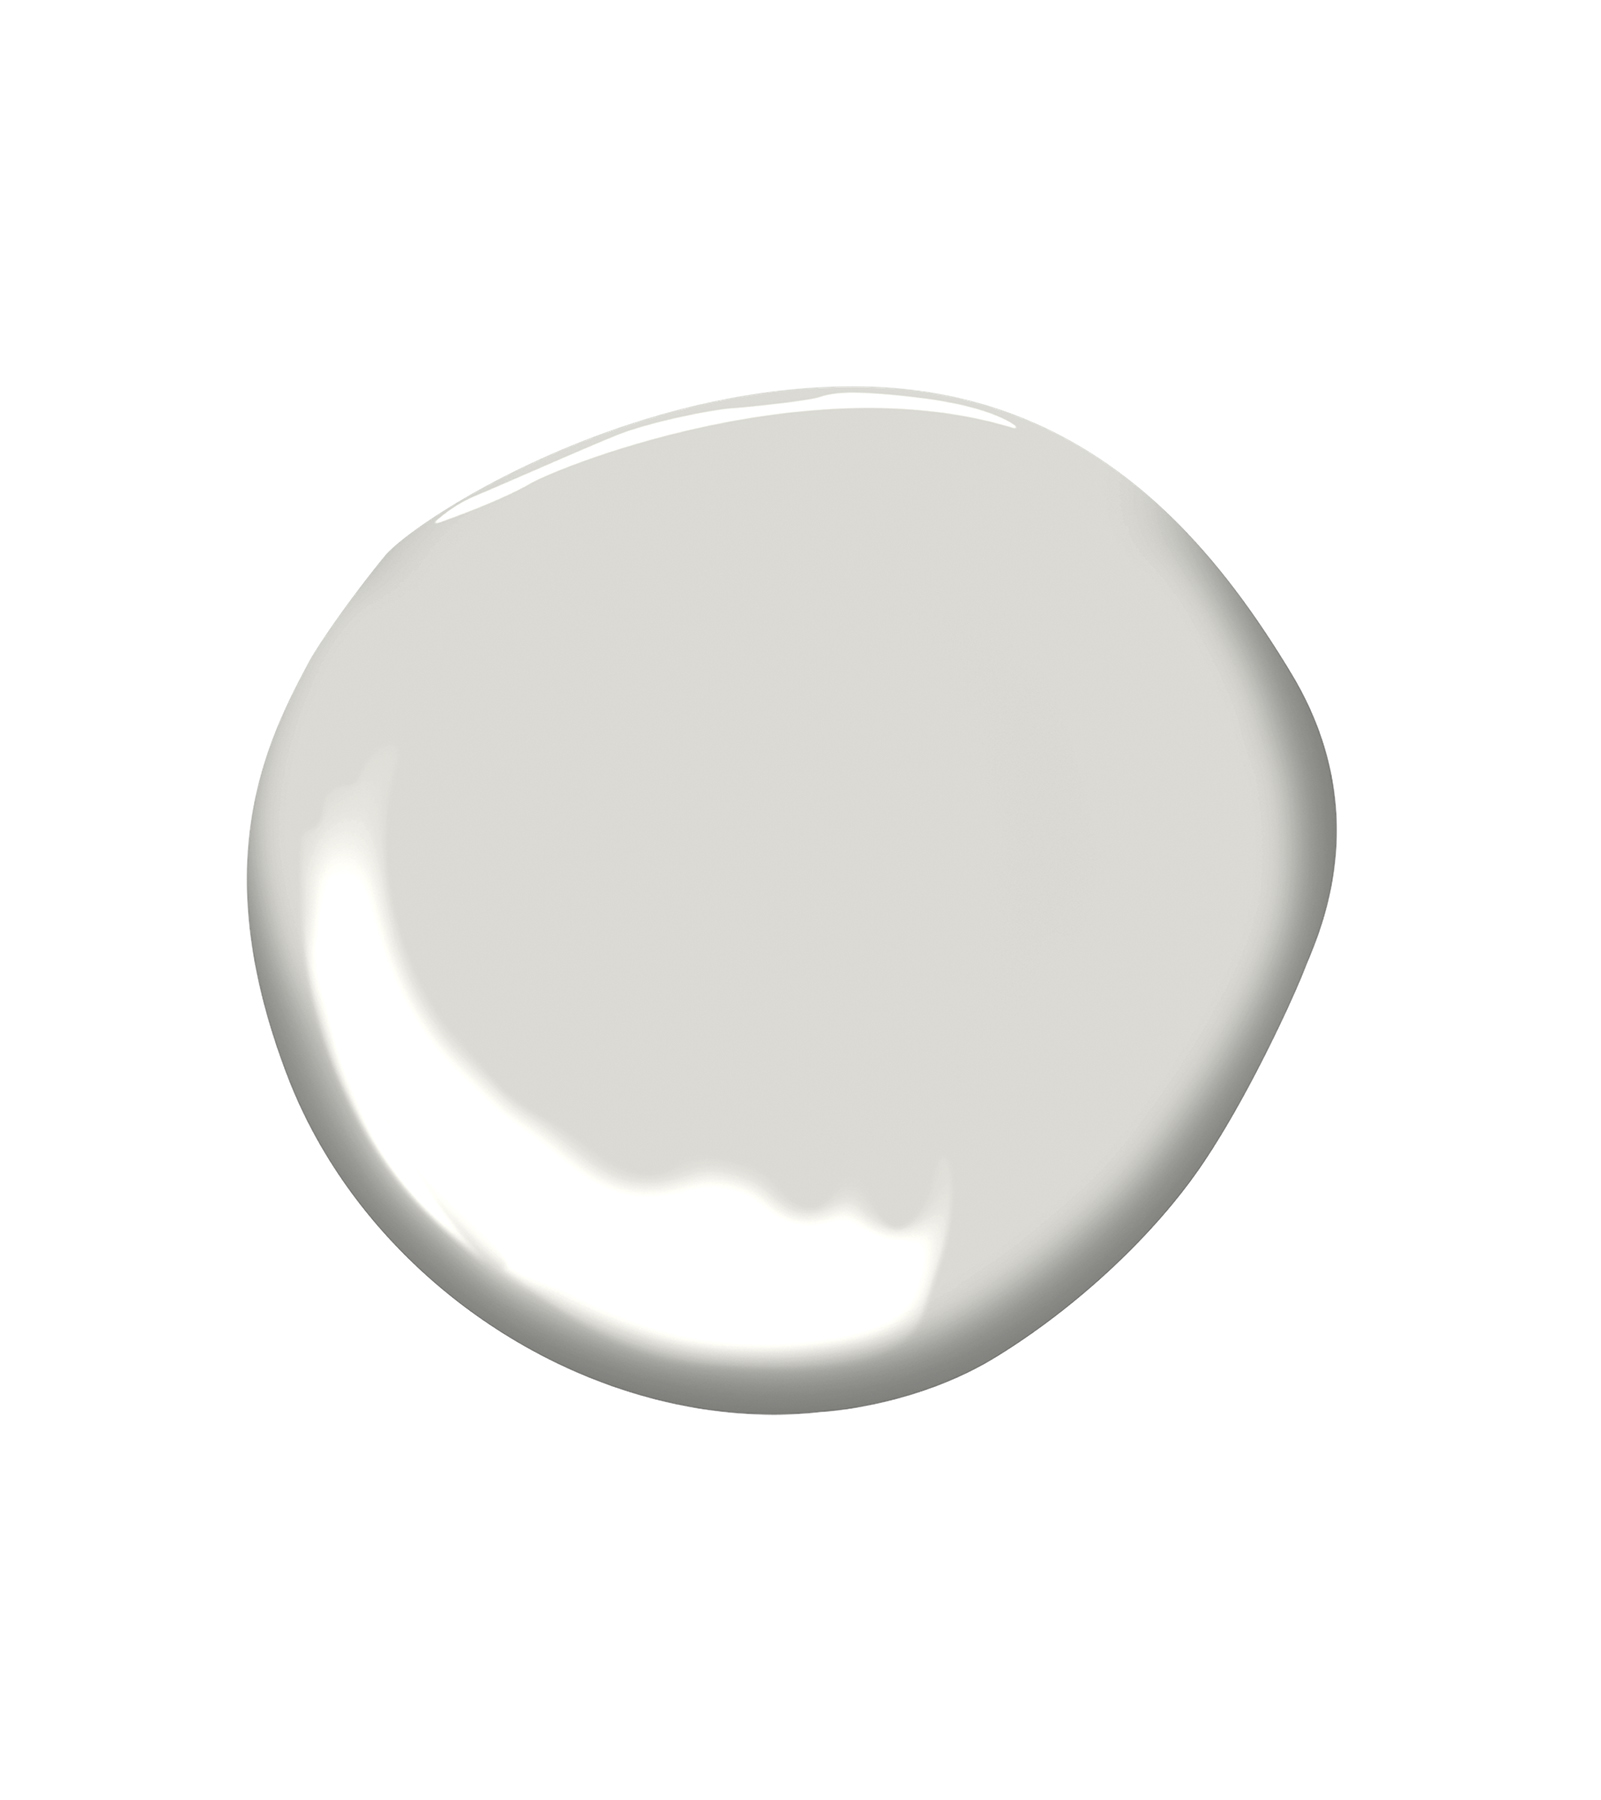 Benjamin Moore: 14 Absolutely Perfect Paint Colors Designers Love